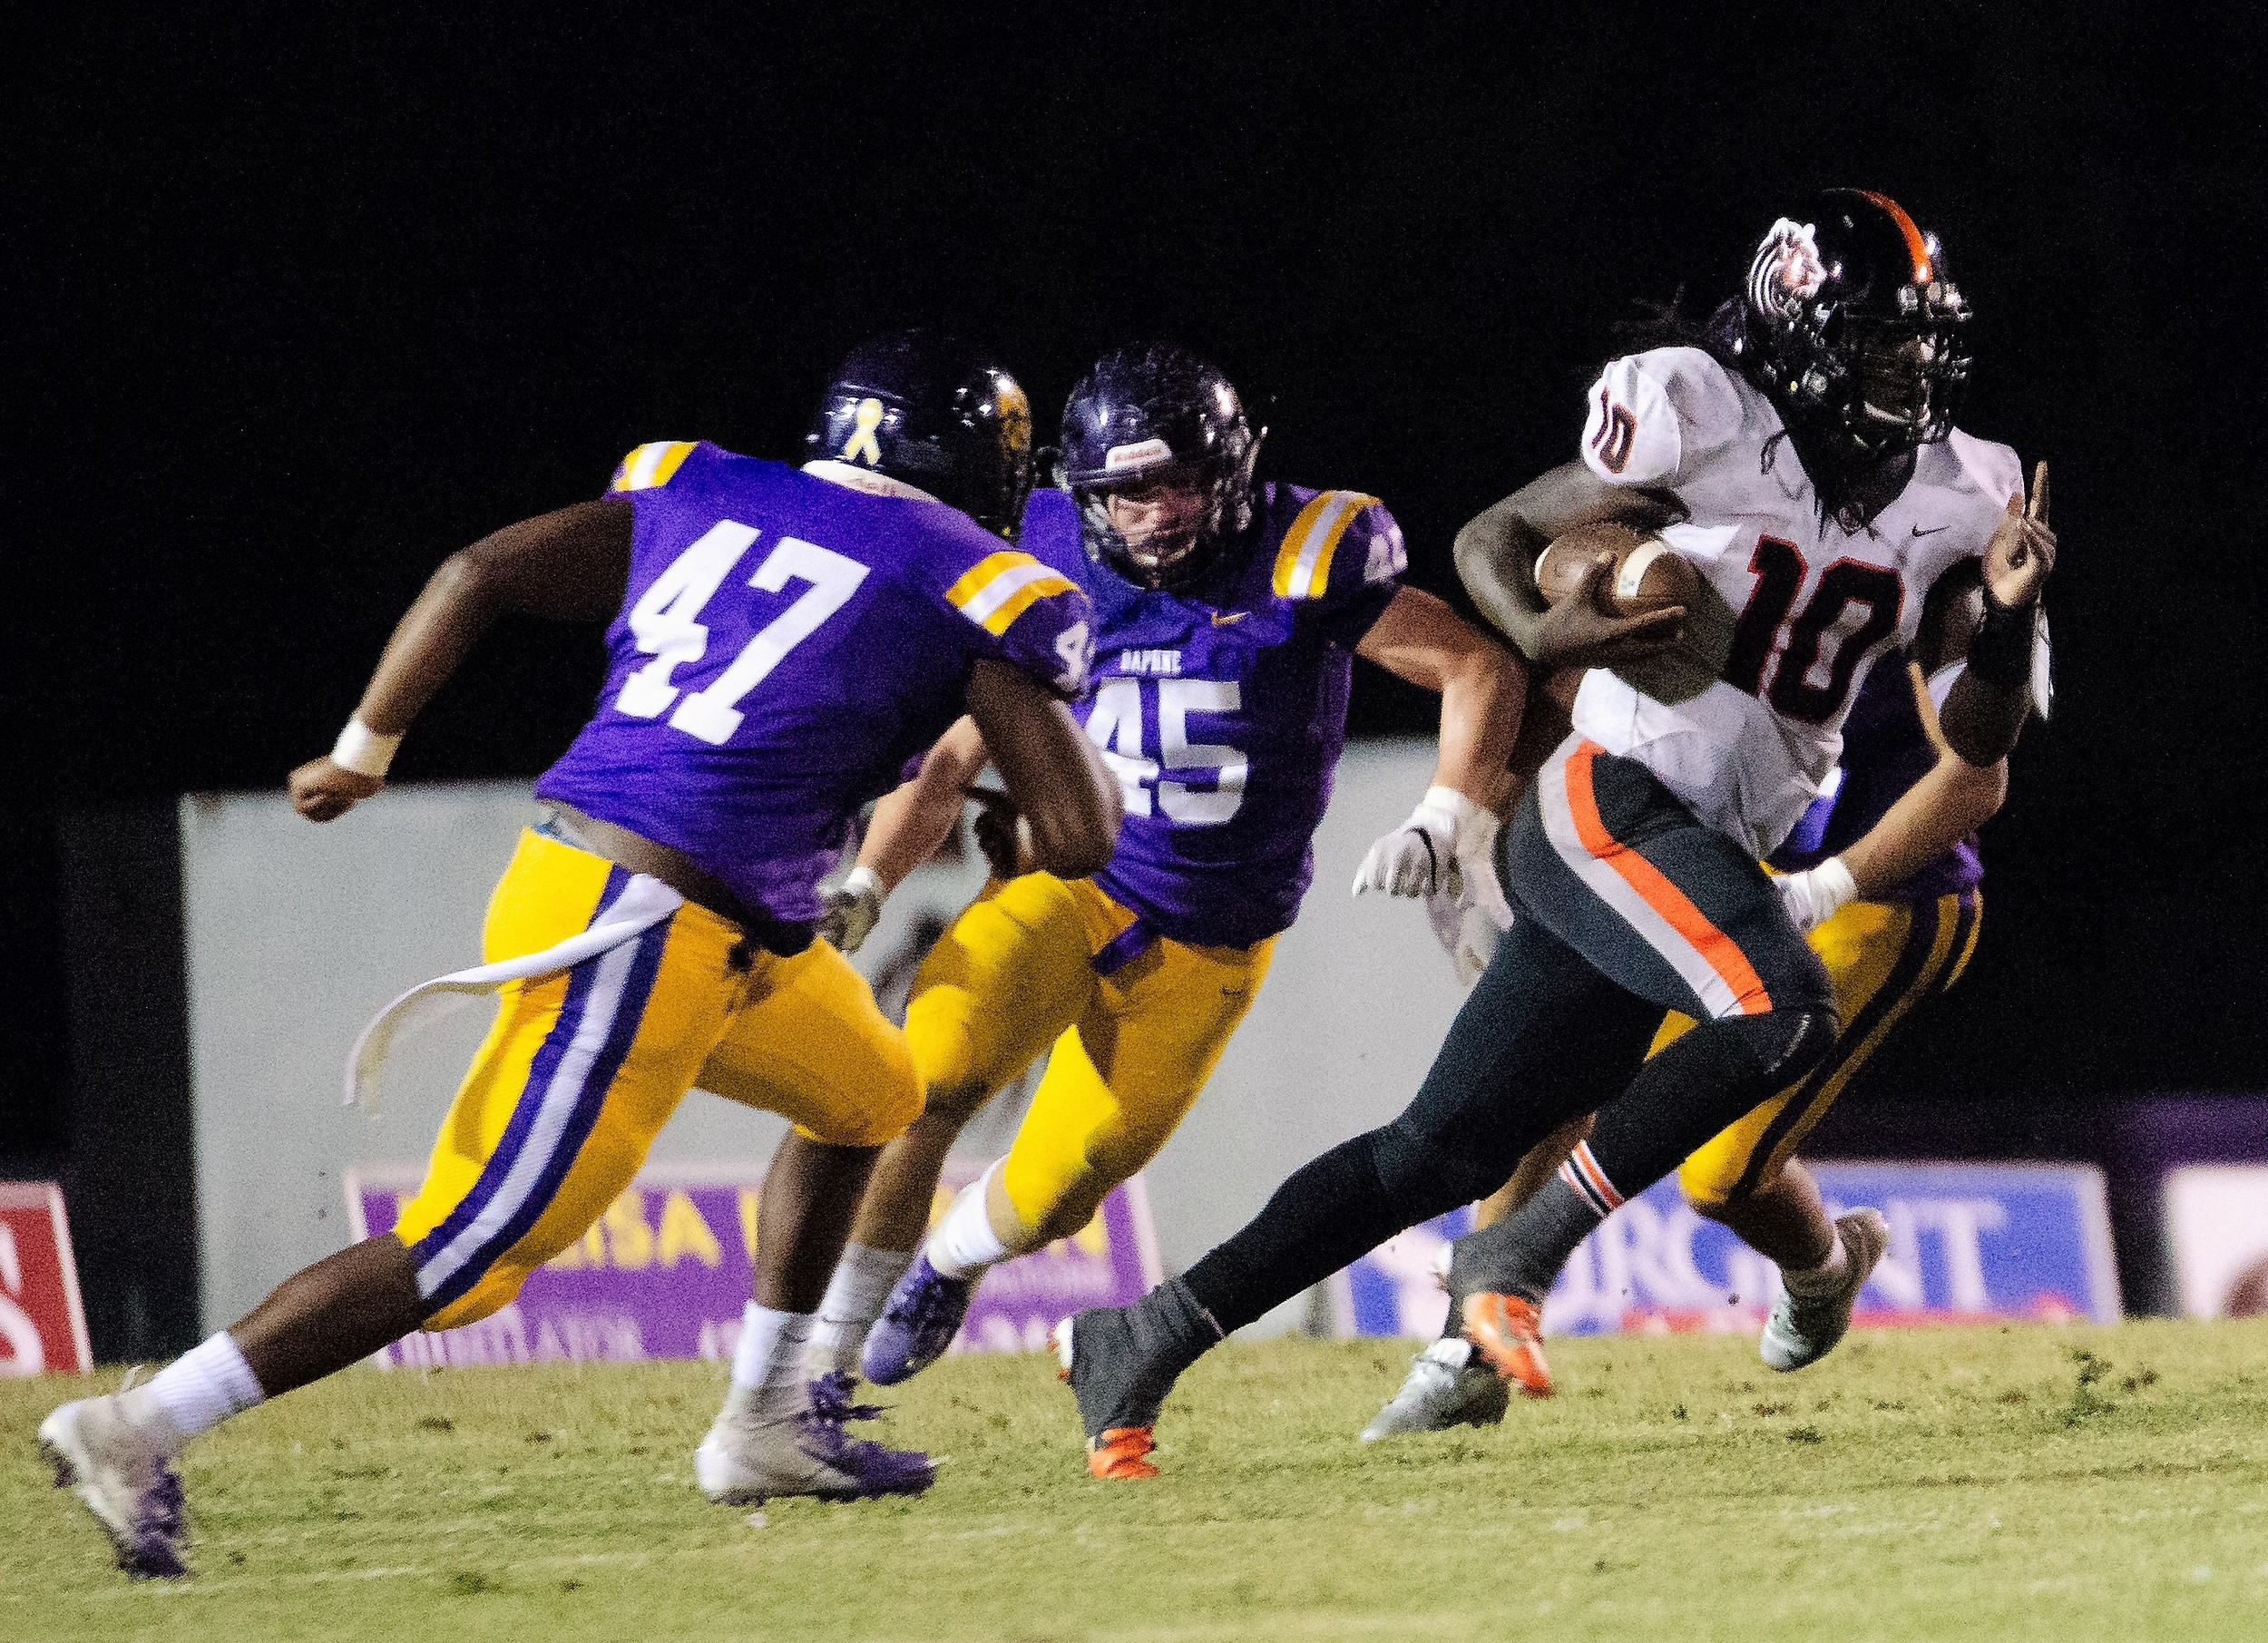 Anthony (A.J.) Mix (10) speeds through a gap between defenders Ricky Hankins (47) and Timothy Getch (45) at Daphne.